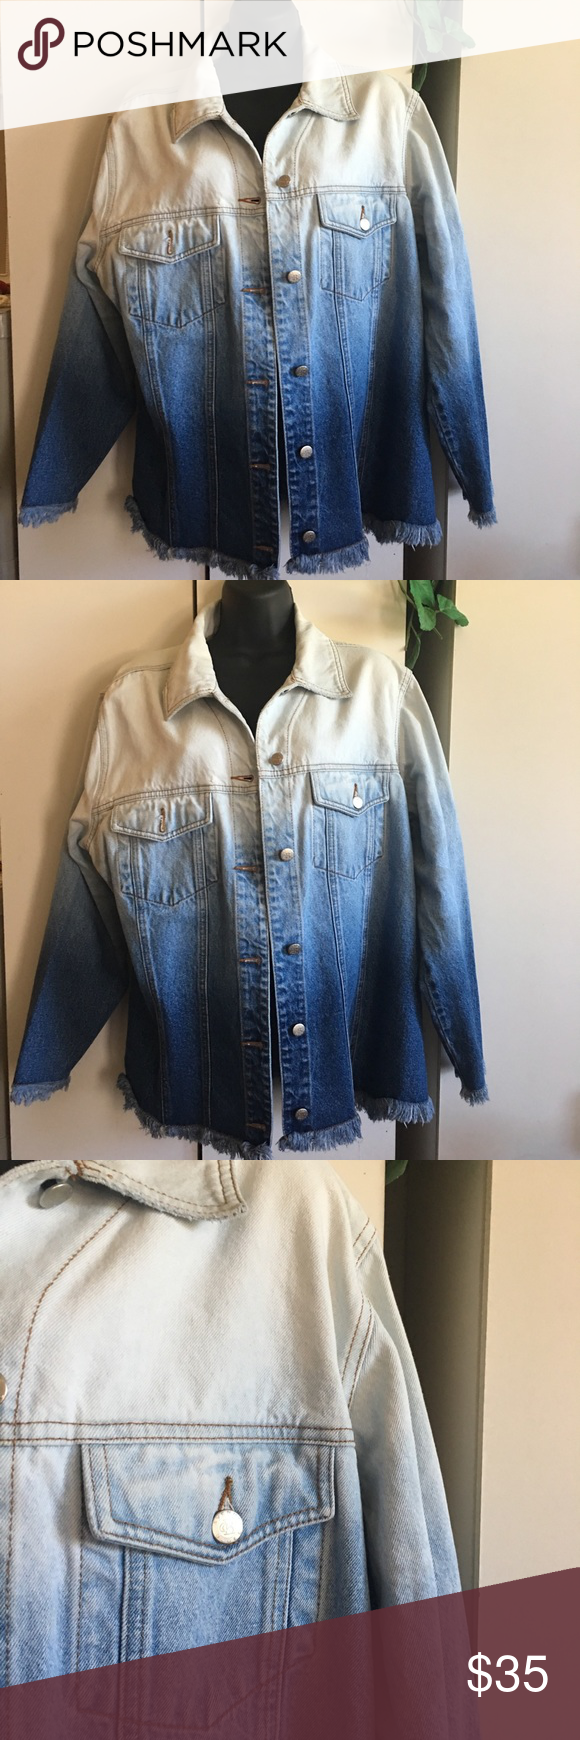 Avenue Blues Jean Jacket Distressed Size 14 16 Wonderful Fade Design Goes From White To Light Blue To D Clothes Design Distressed Jean Jacket Blue Jean Jacket [ 1740 x 580 Pixel ]